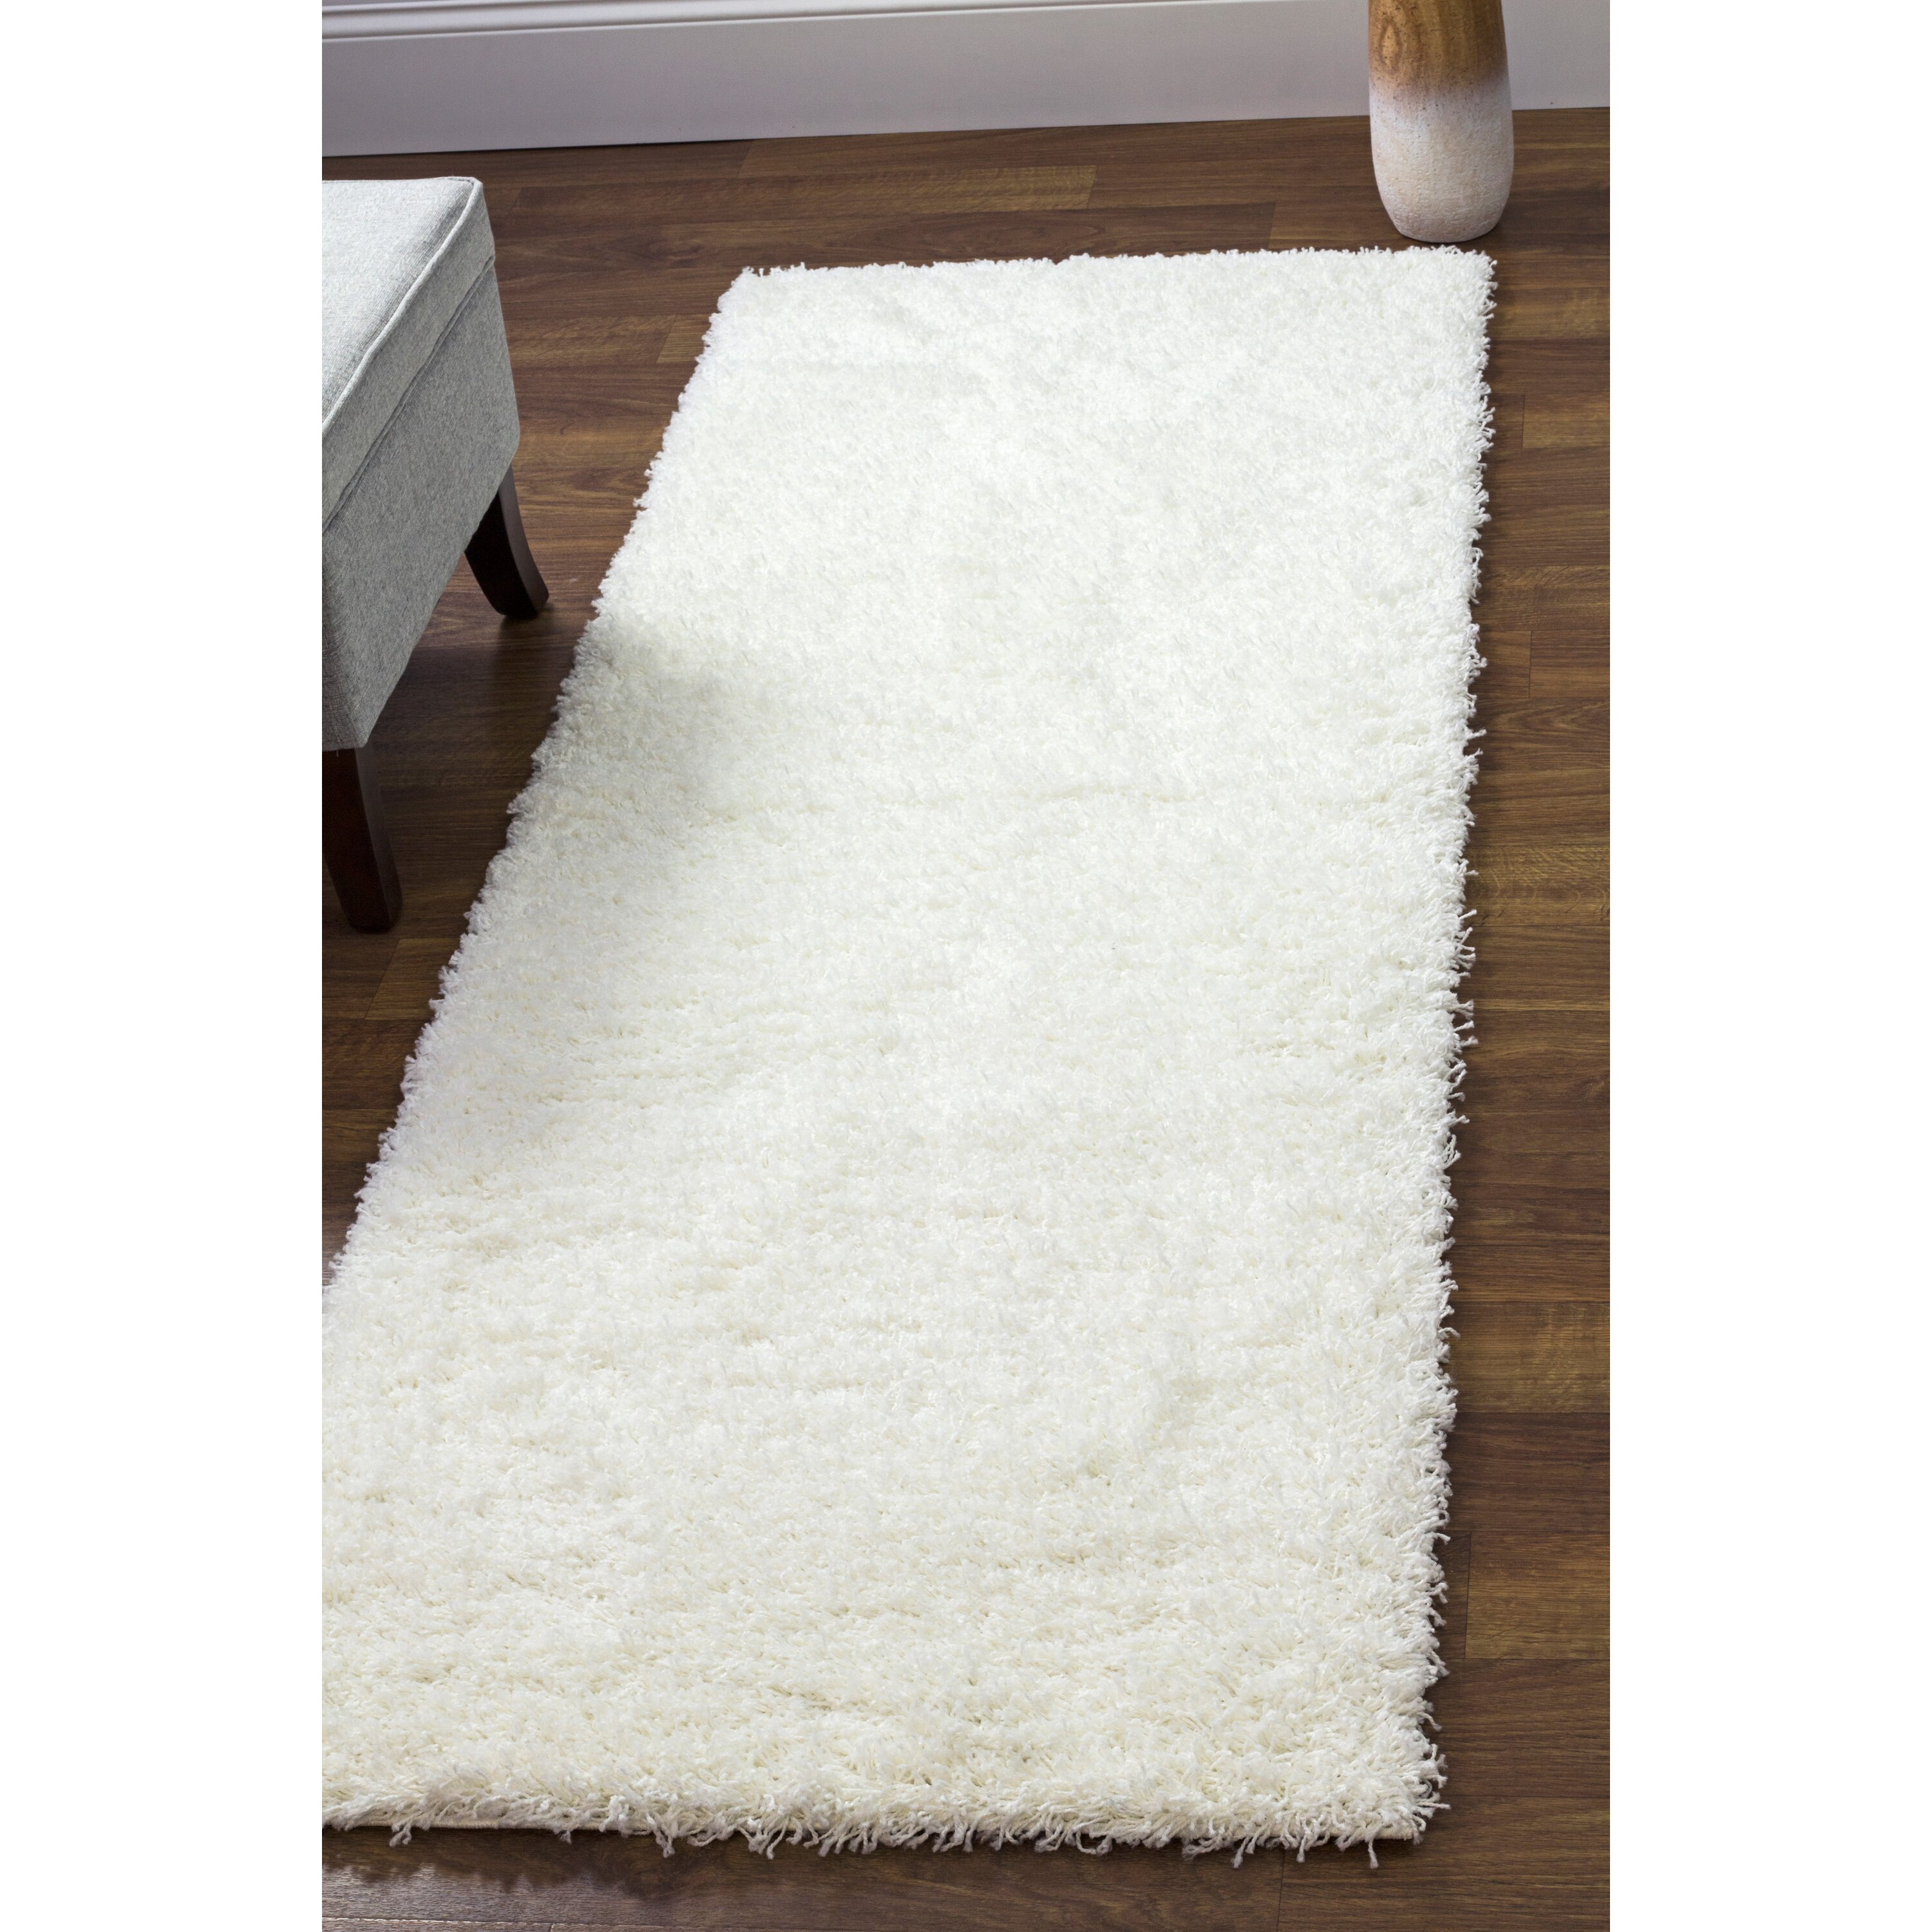 Super Area Rugs White Area Rug & Reviews